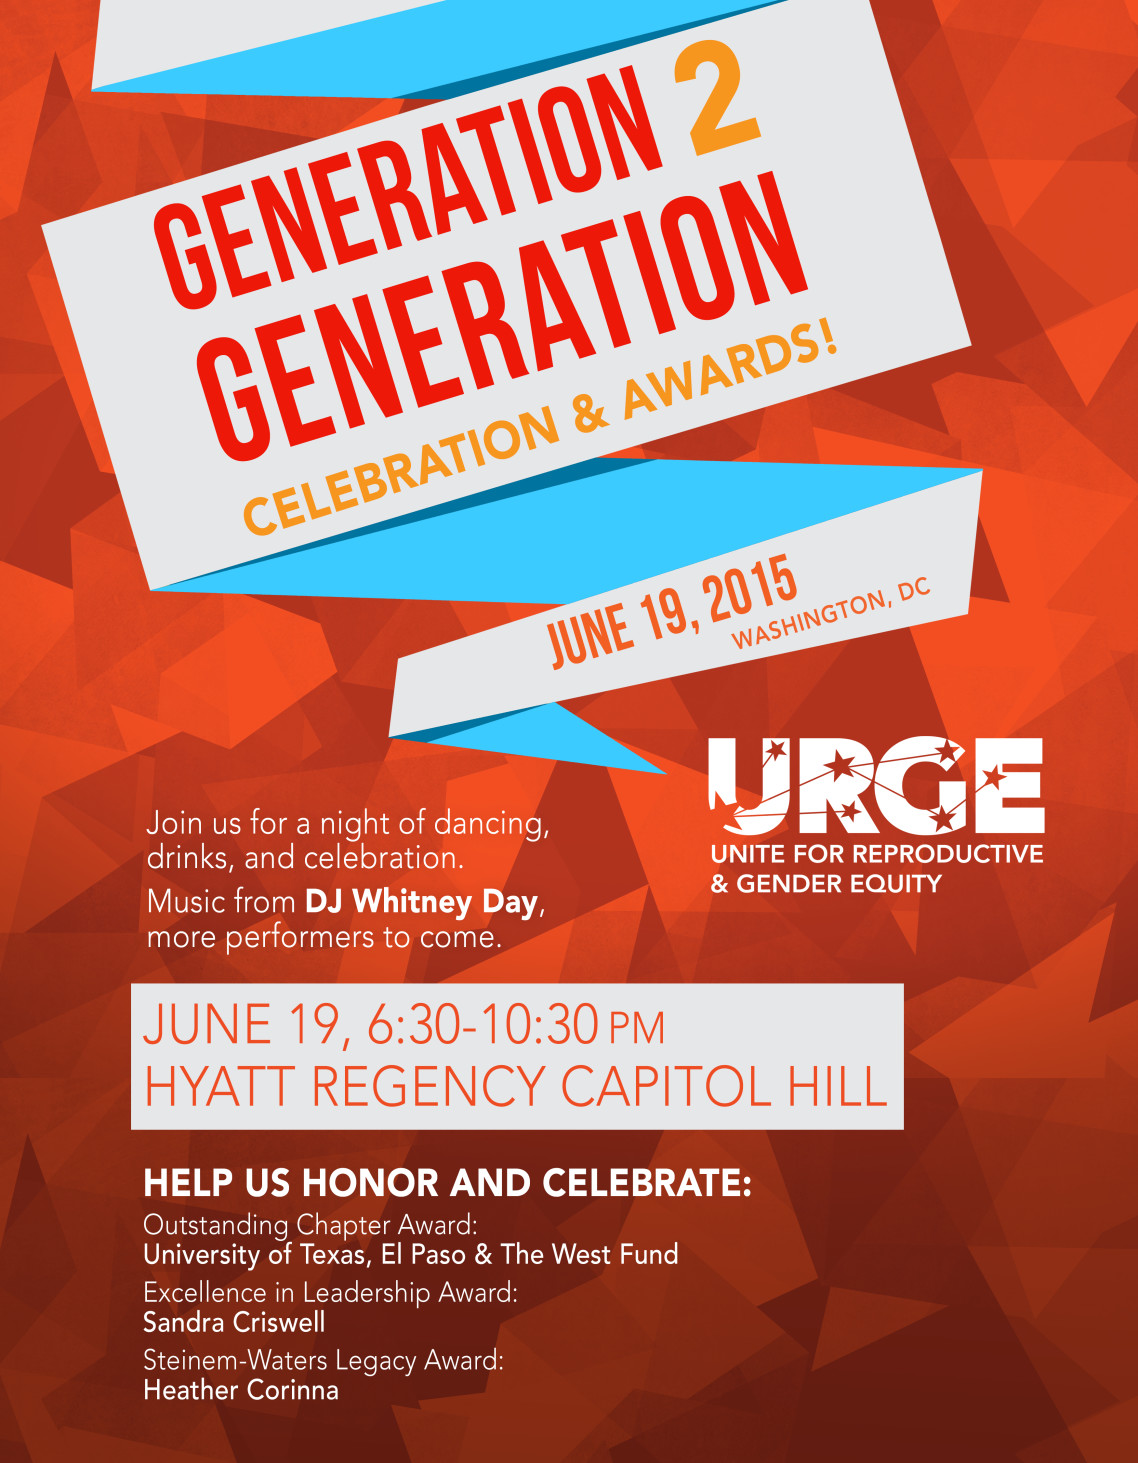 Generation 2 Generation Celebration & Awards